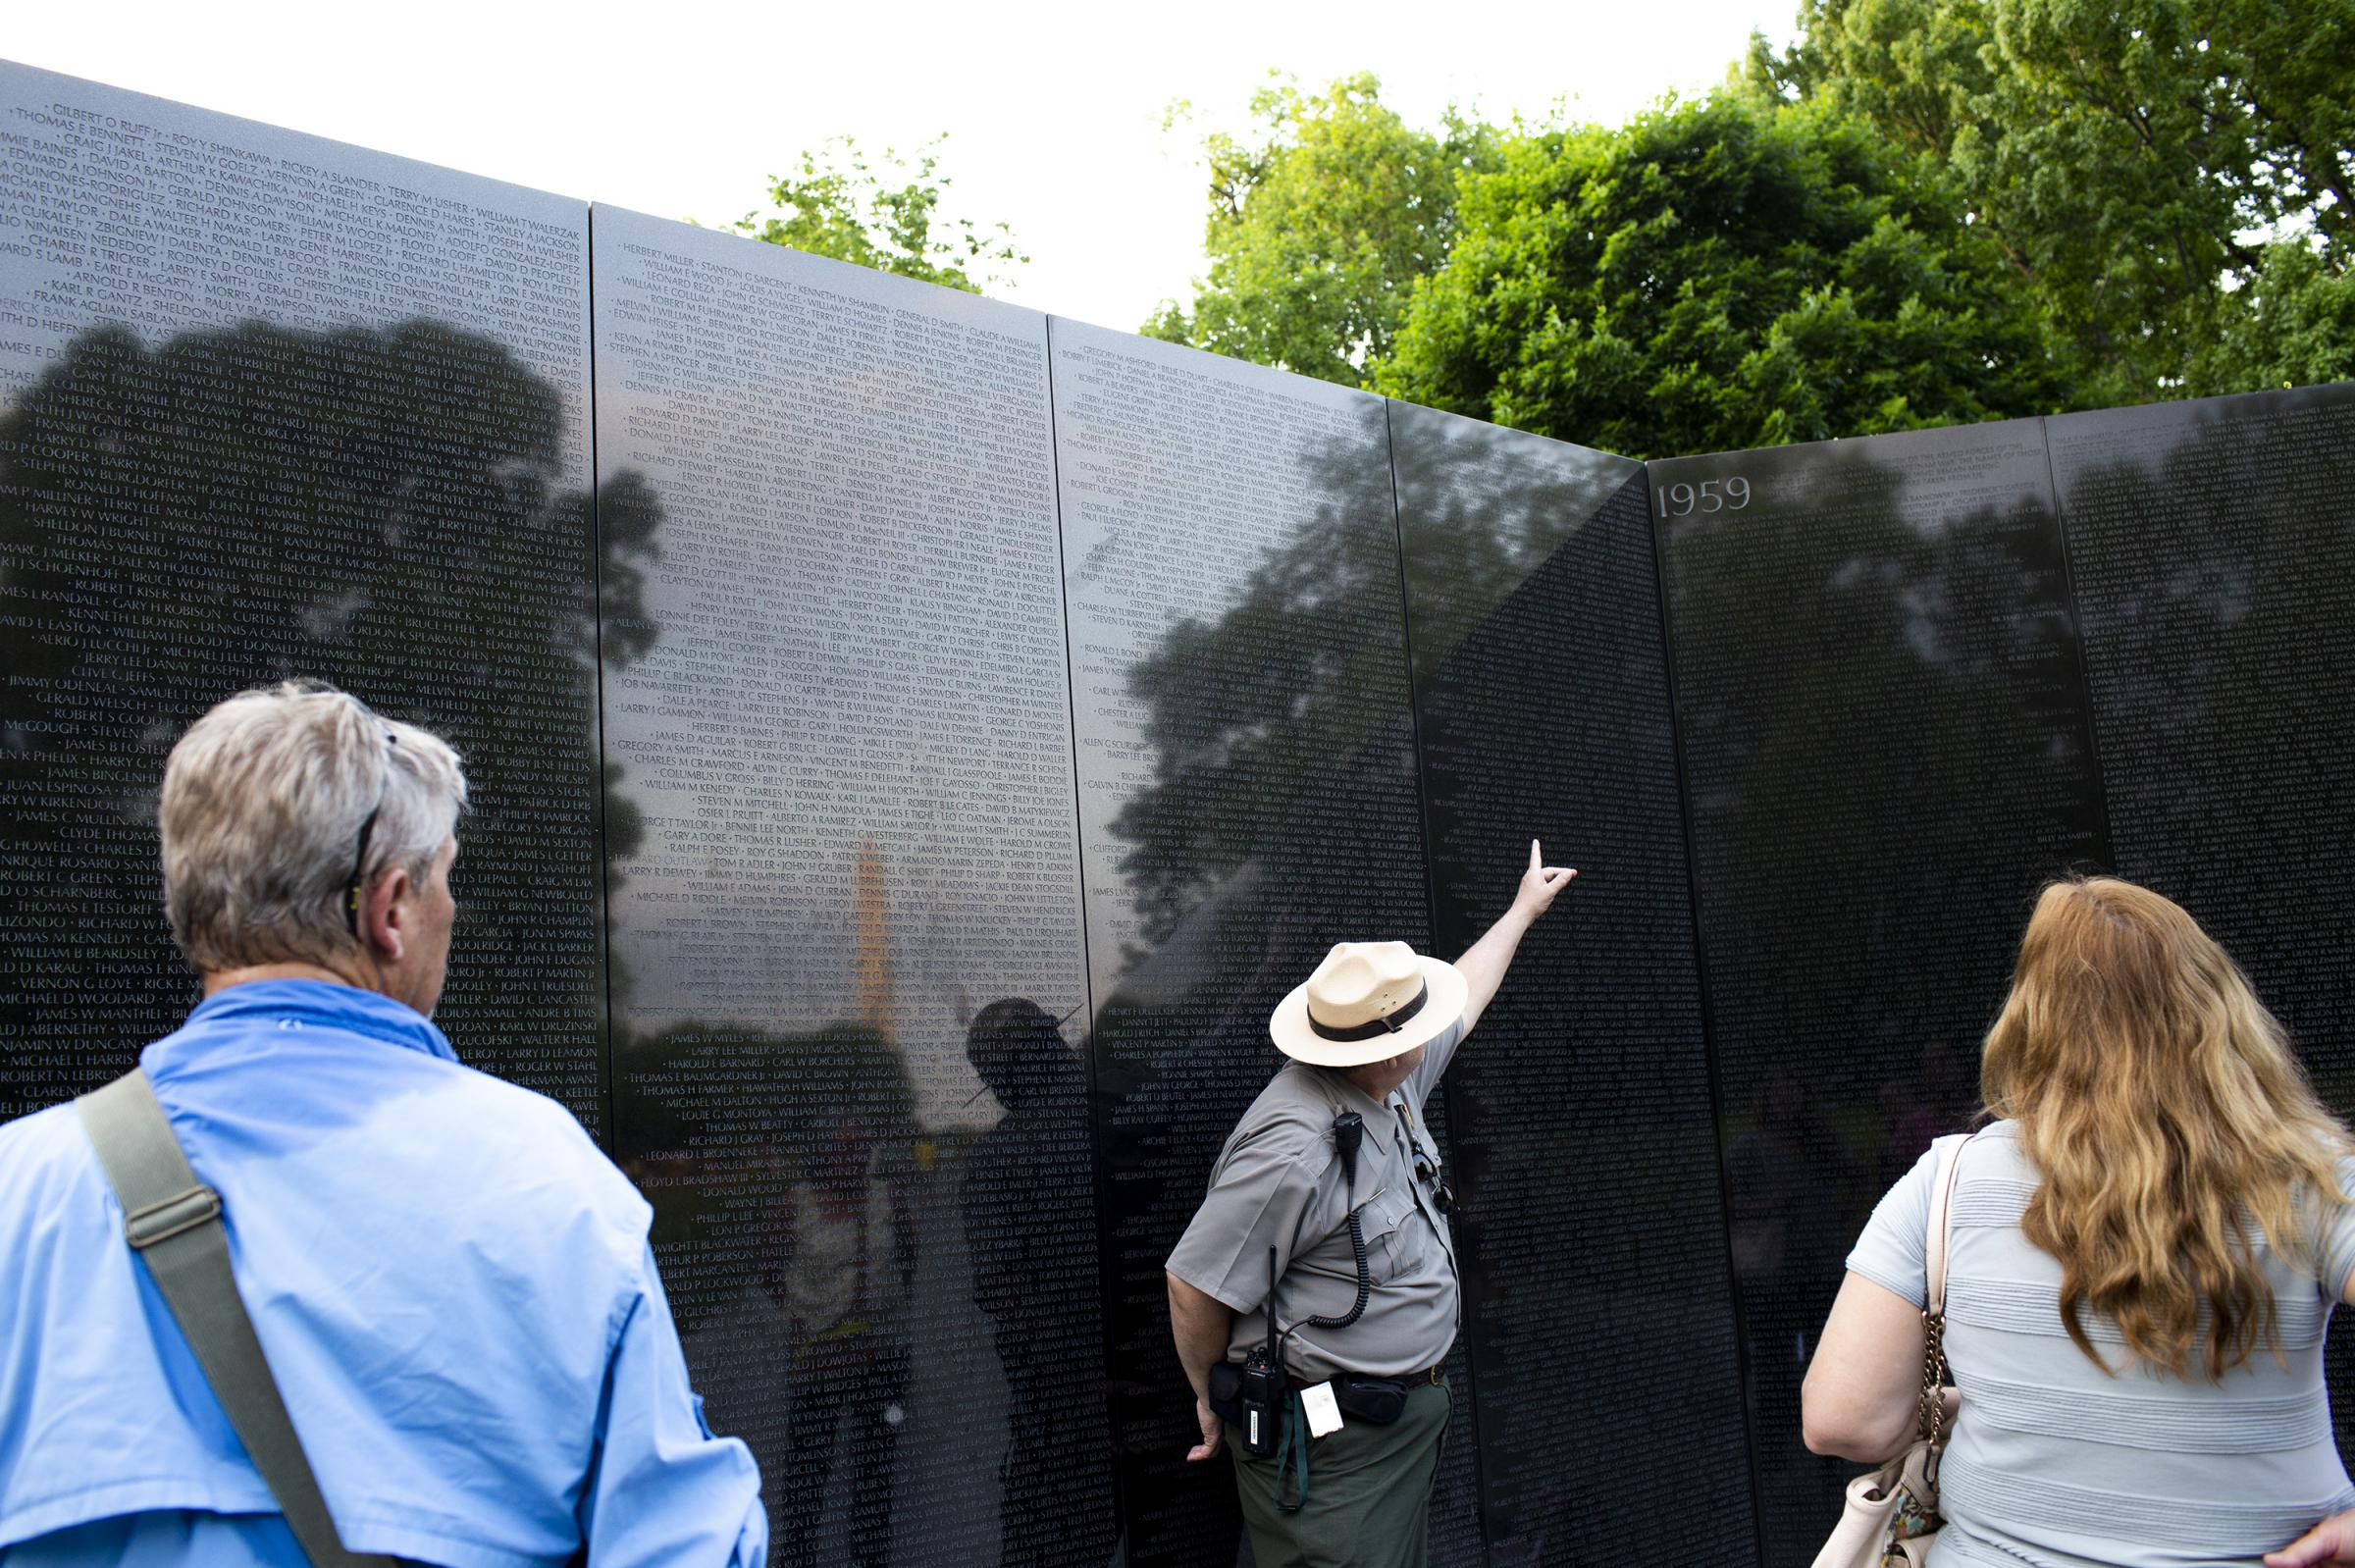 human ashes left at the vietnam memorial find a not final resting